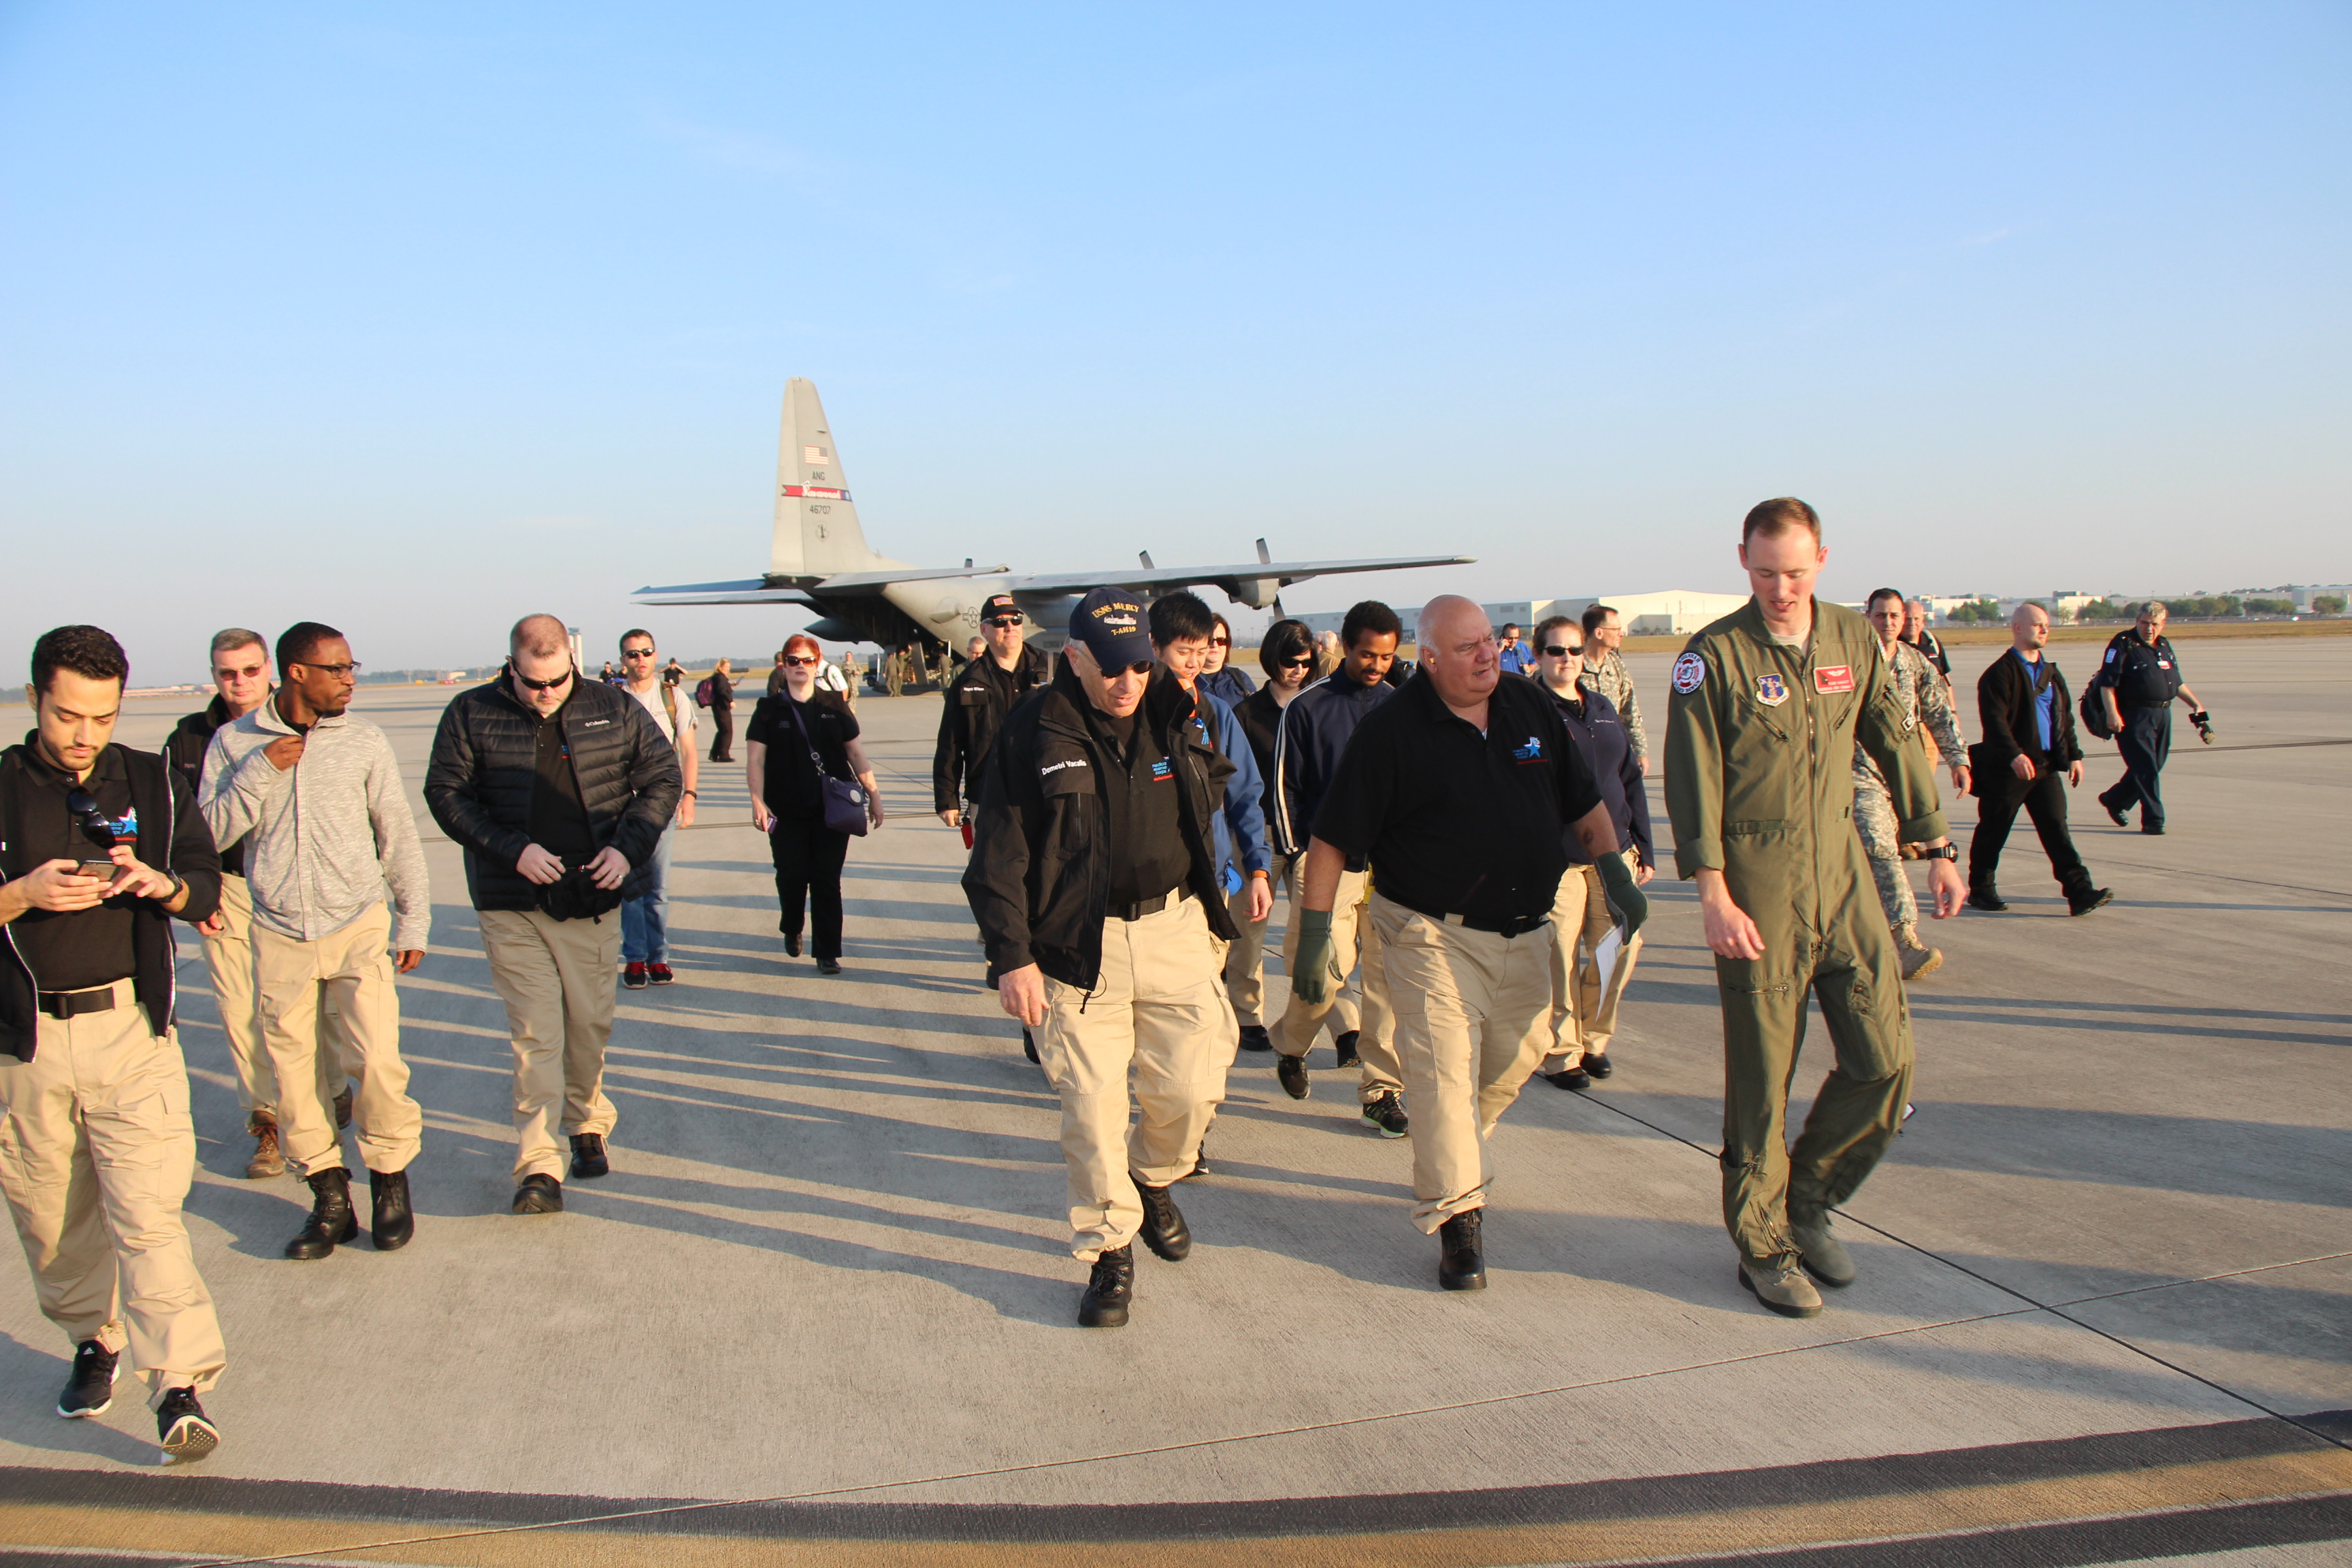 Joint GA State Medical Assessment Team and GA SDF Task Force soldiers arrived March 29, 2017, to Air Dominance Center, Savannah, GA to participate in Vigilant Guard 2017 exercise. Vigilant Guard 2017 Georgia is a multi-state multi-agency training exercise, sponsored by U.S. Northern Command, in collaboration with the National Guard Bureau.  Georgia State Defense Force photo by Capt. Vadim Timchenko.